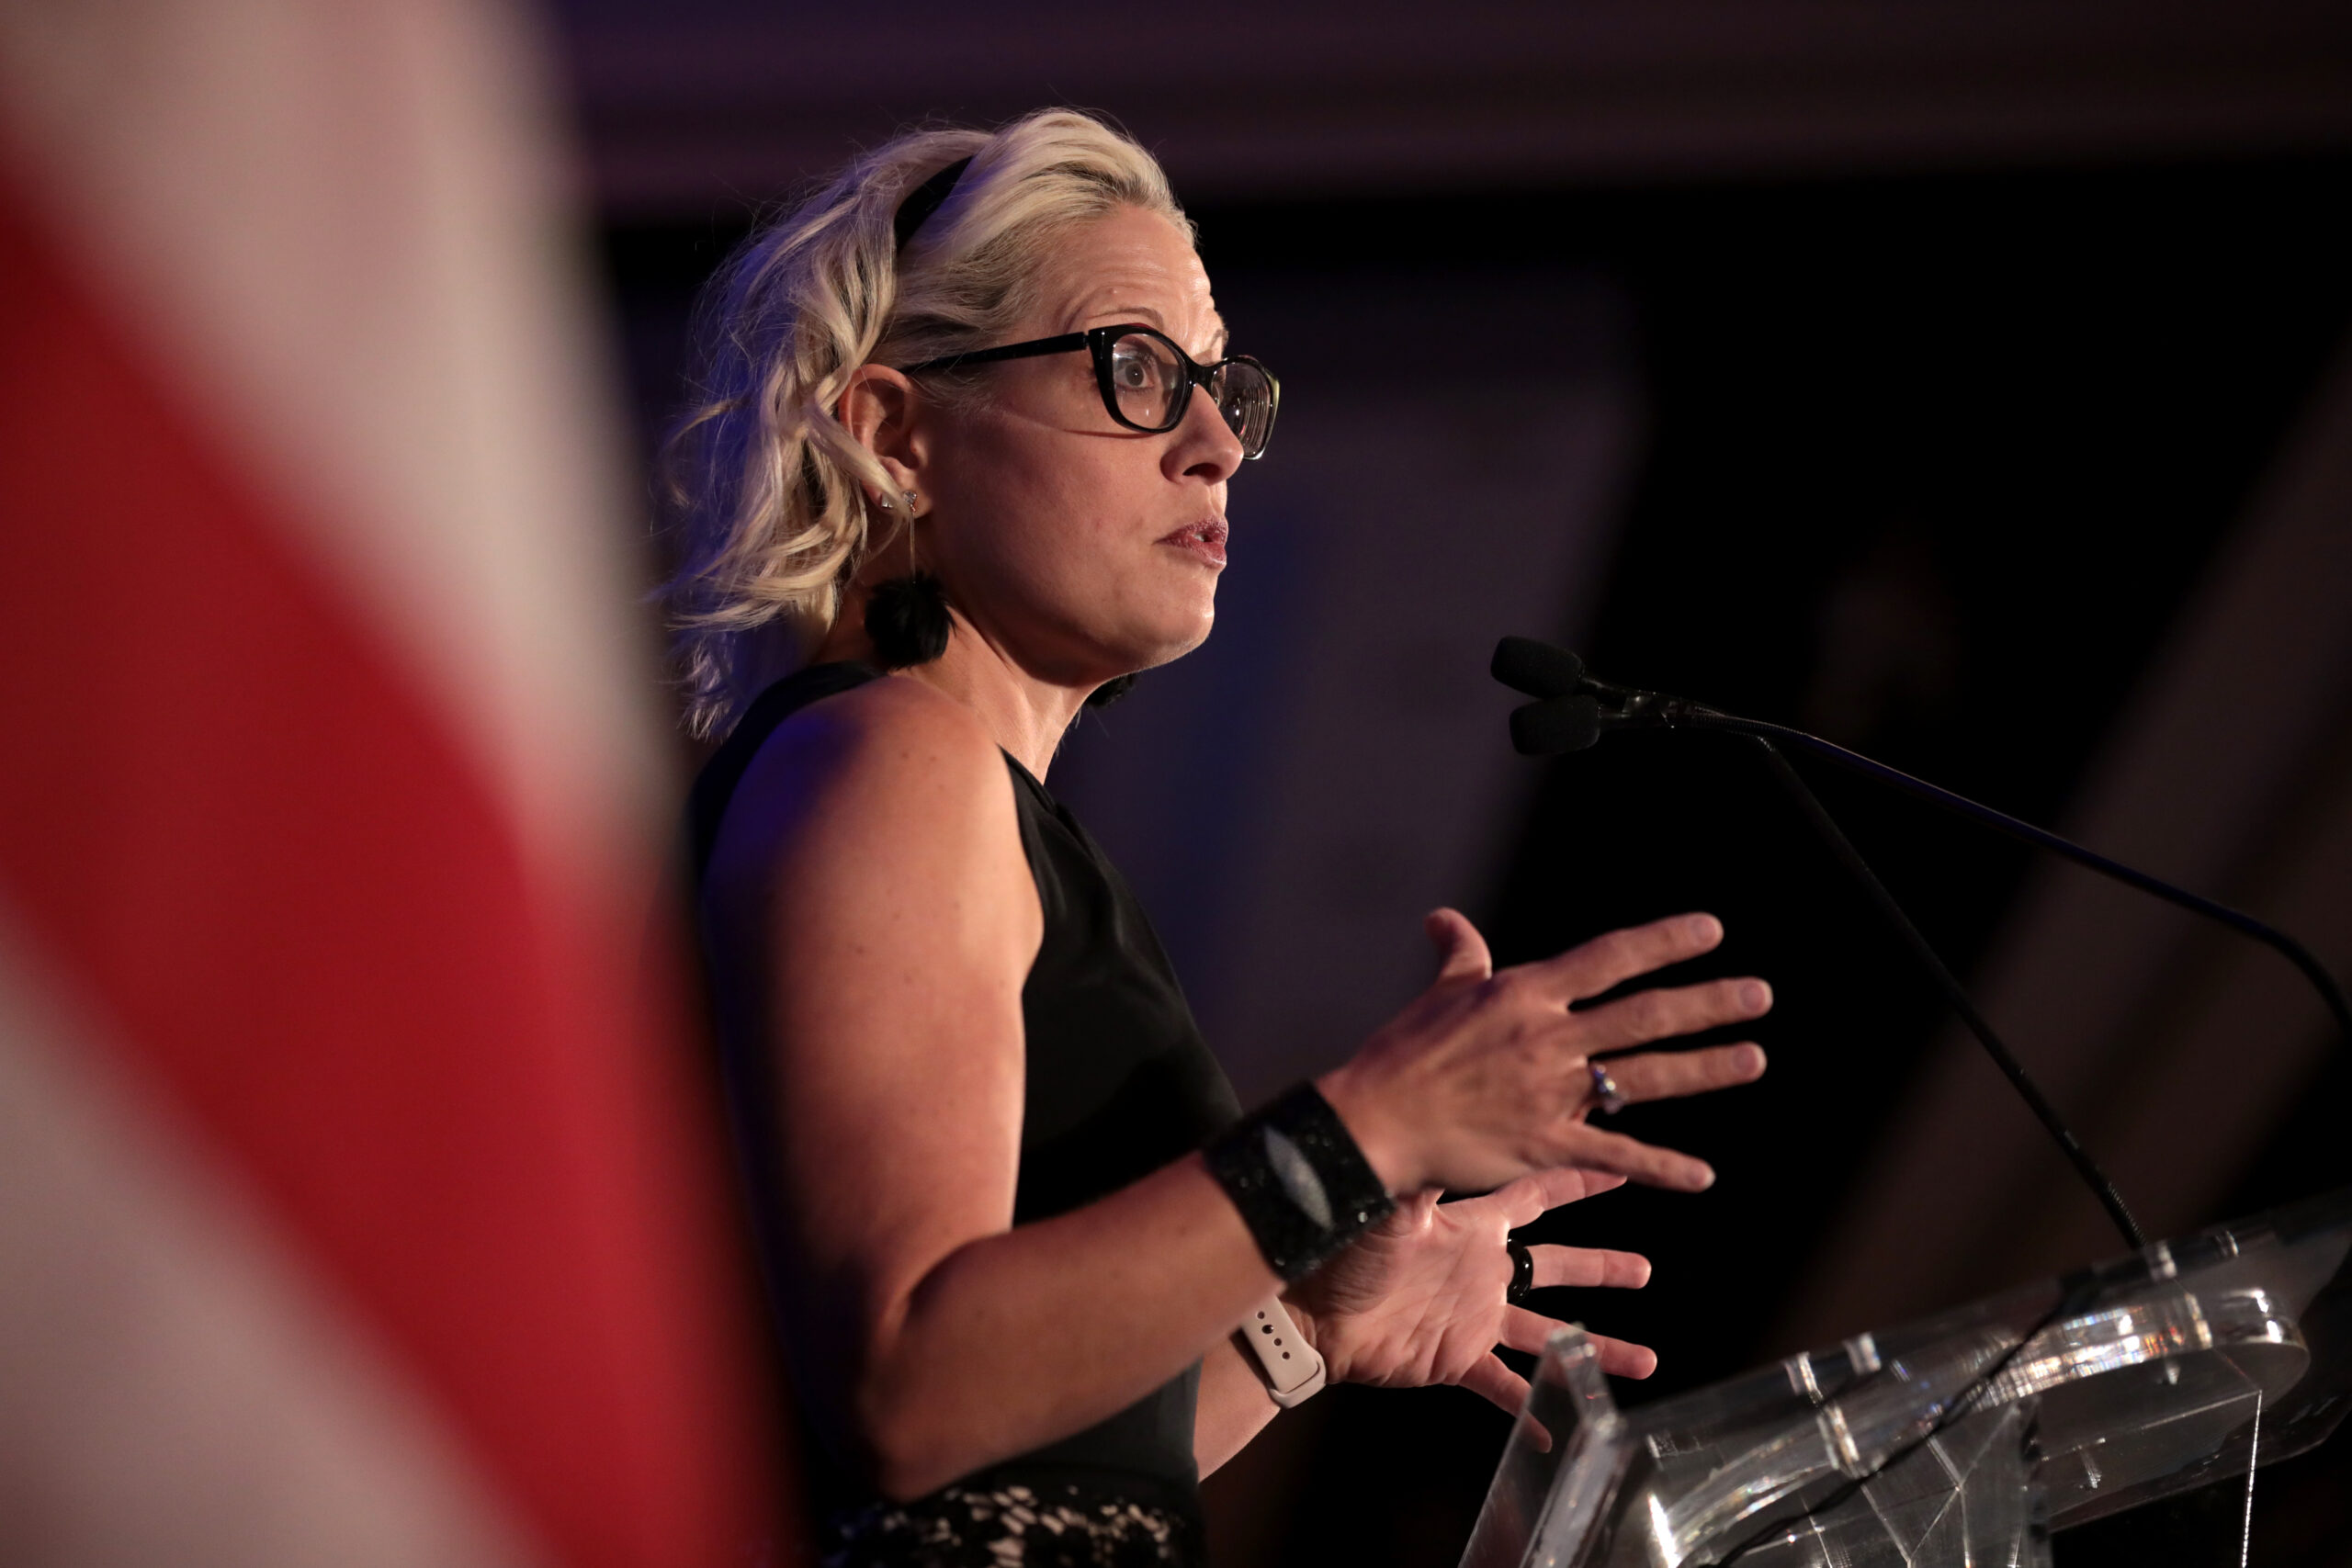 LGBTQ people need to wash our hands of Kyrsten Sinema. She doesn't deserve our support.